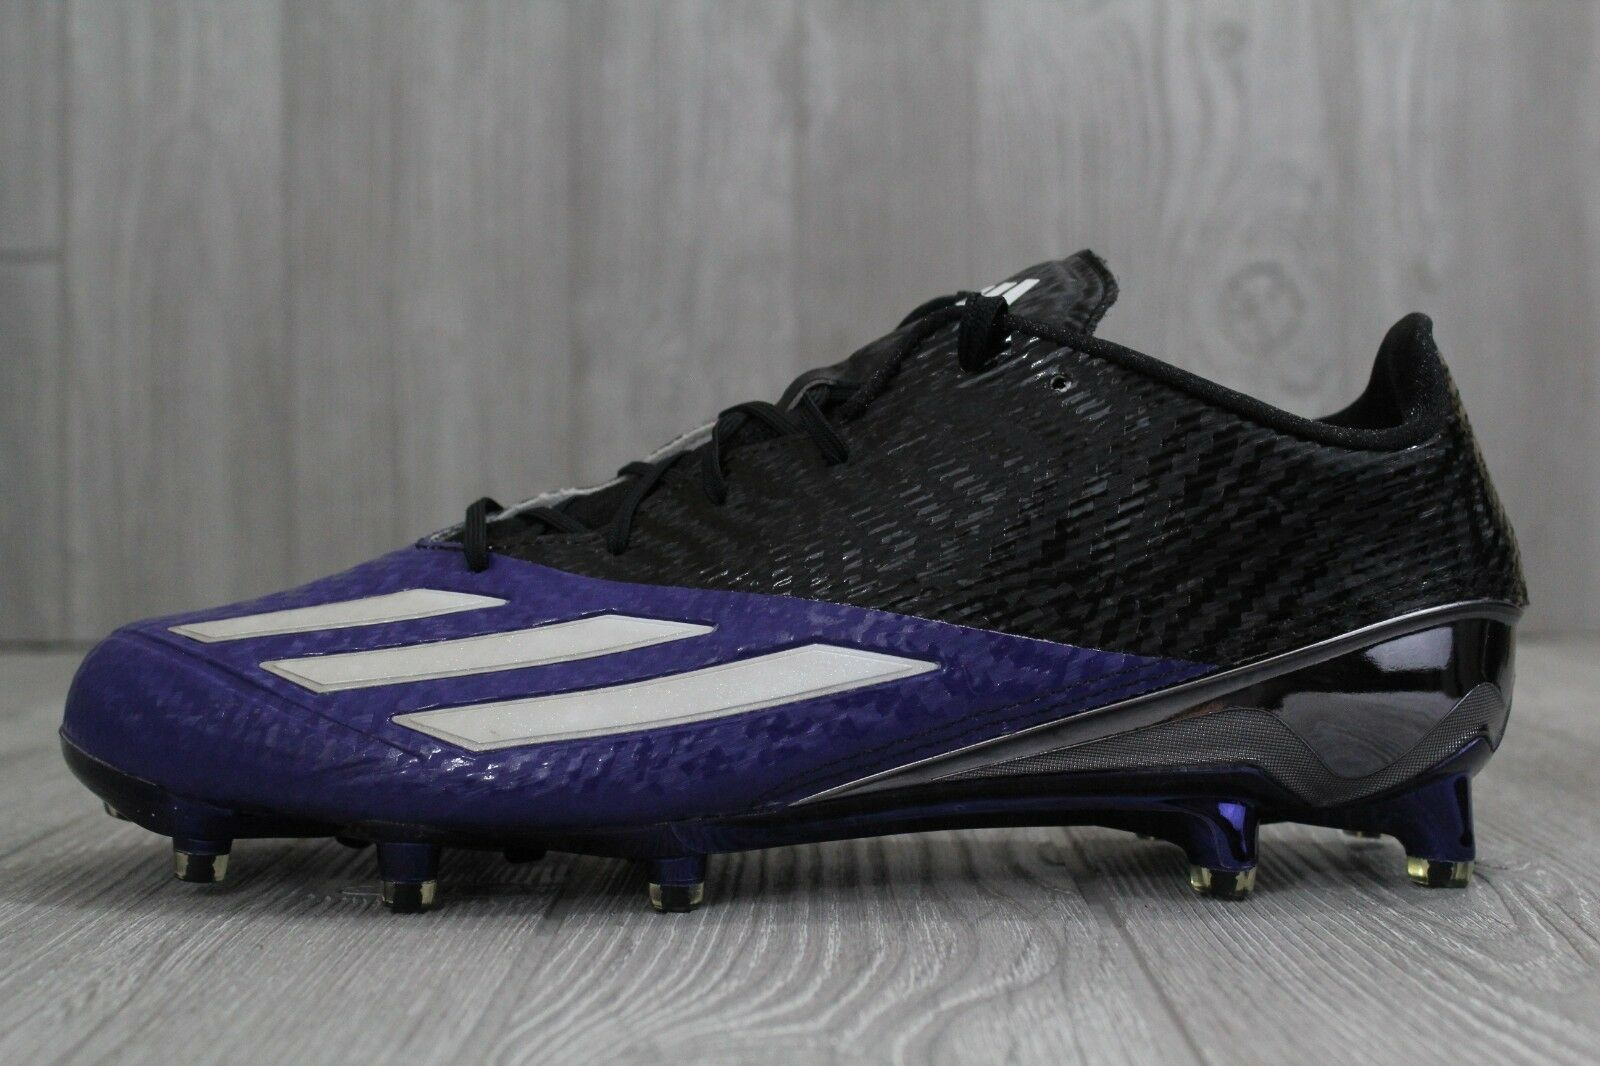 30 Adidas AdiZero 5 Star 5.0 Football Cleats Black Purple Men's 11, 11.5 AQ7168